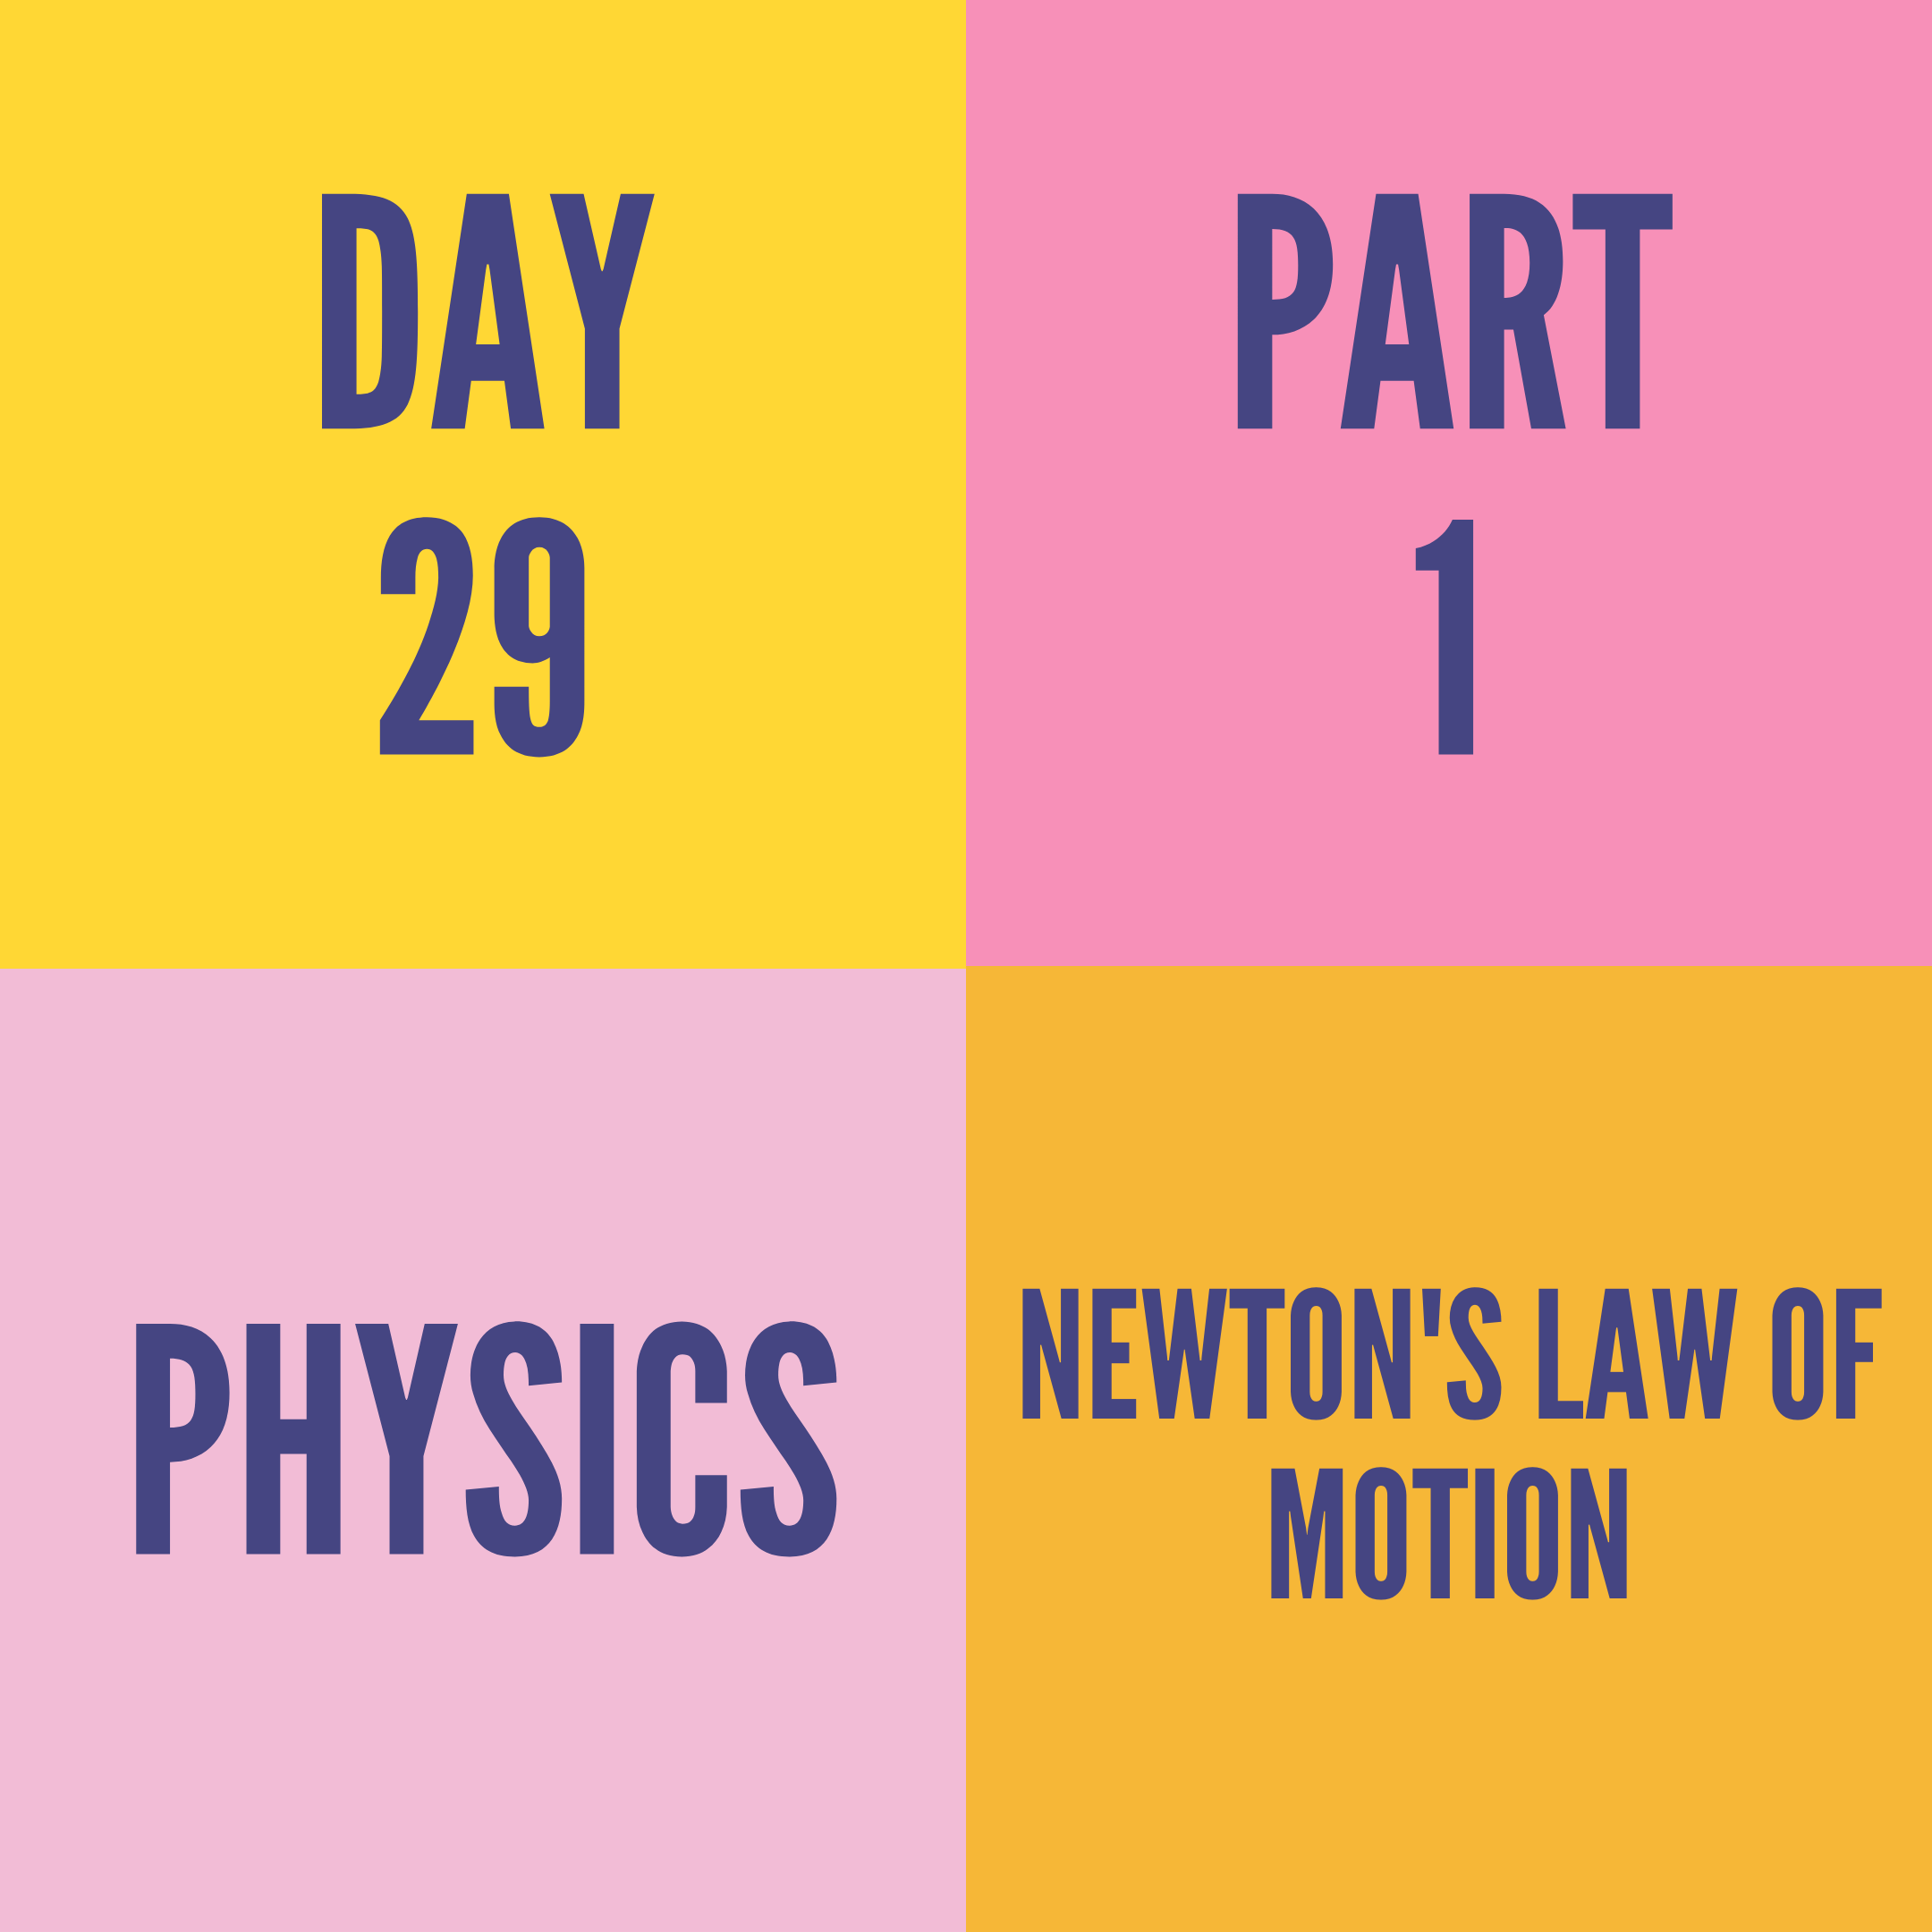 DAY-29 PART-1 NEWTON'S LAW OF MOTION